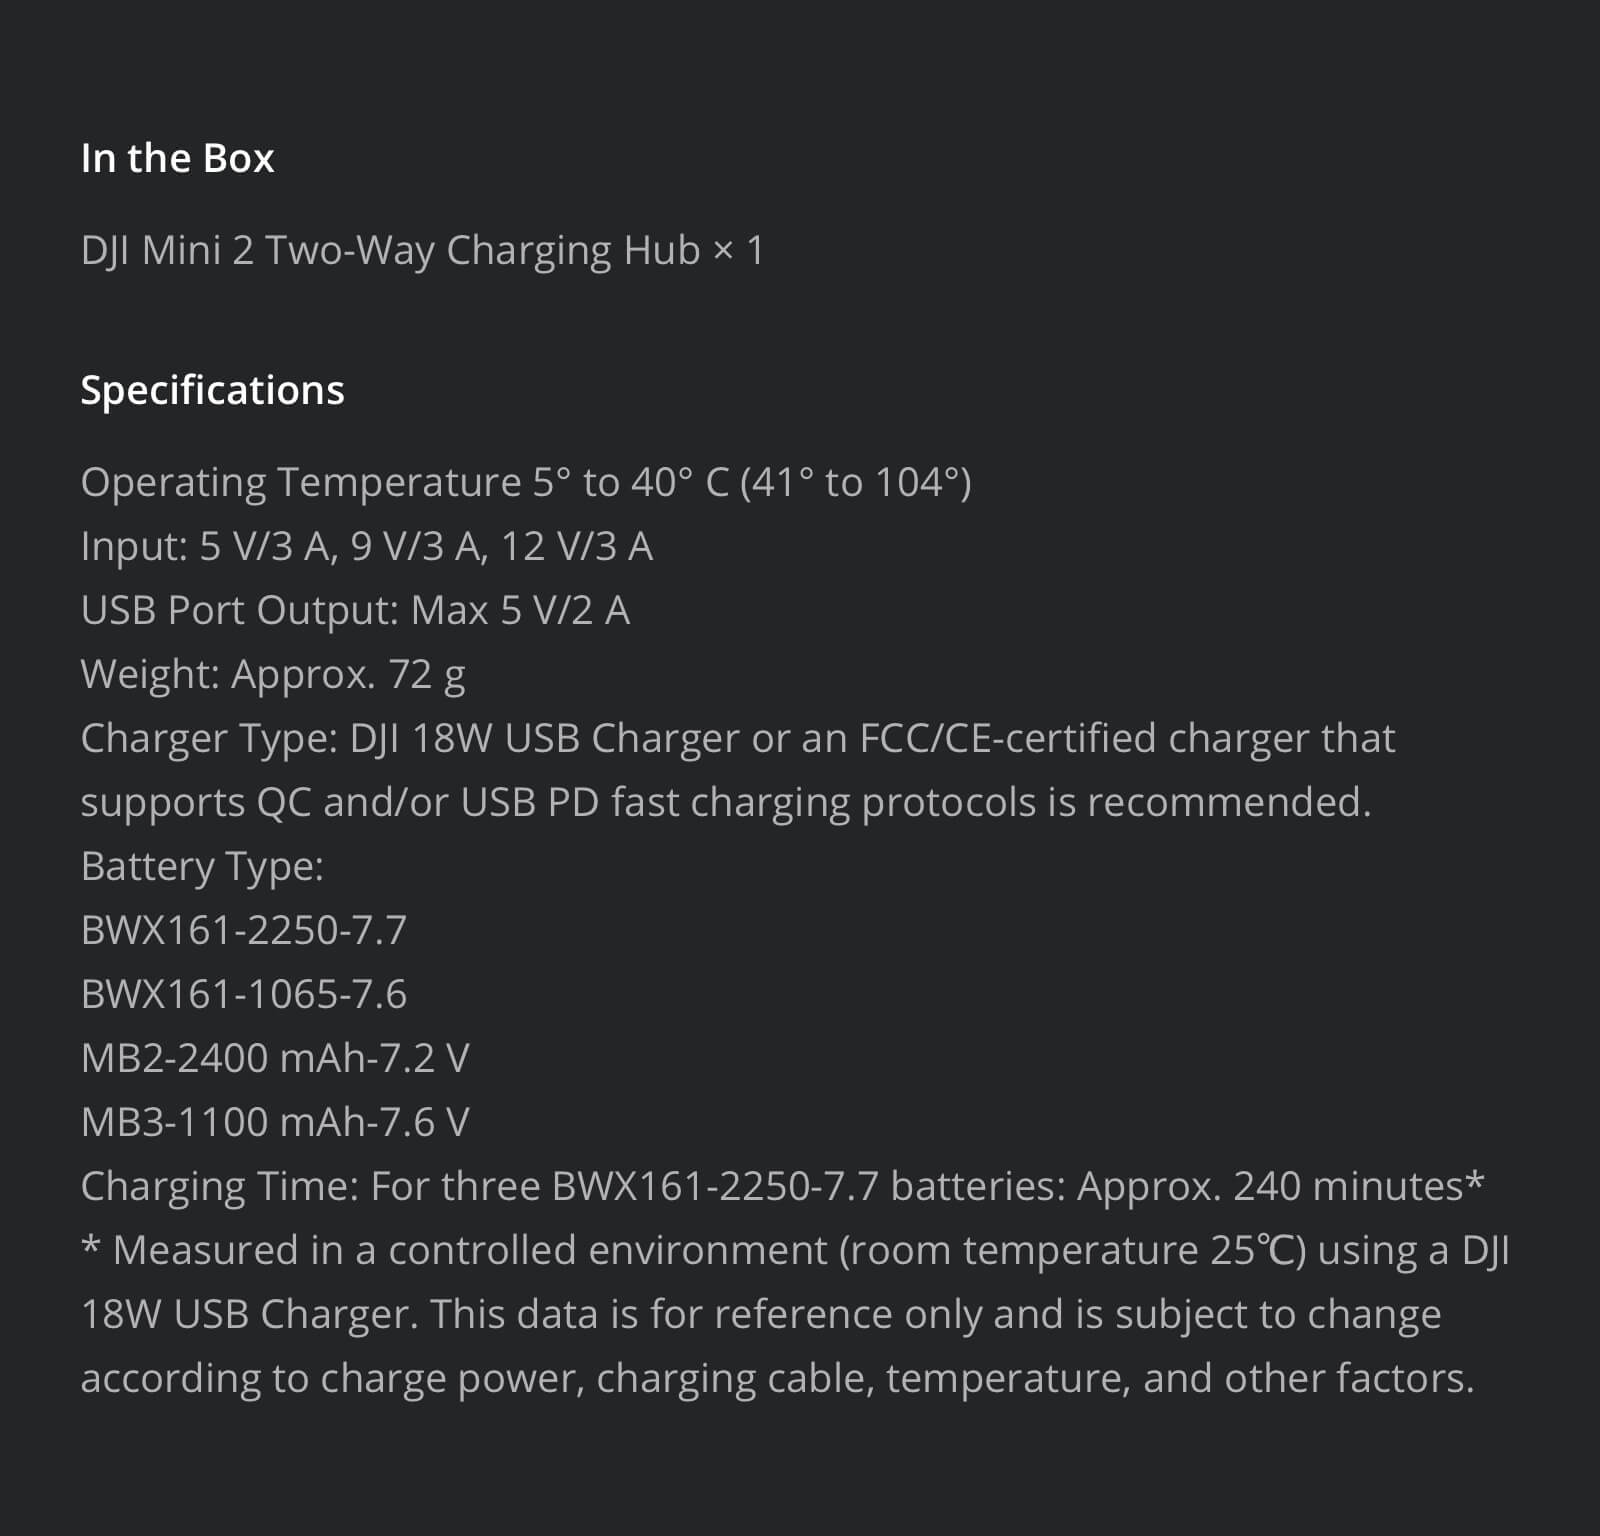 DJI Mini 2 Two-Way Charging Hub Specifications and Included